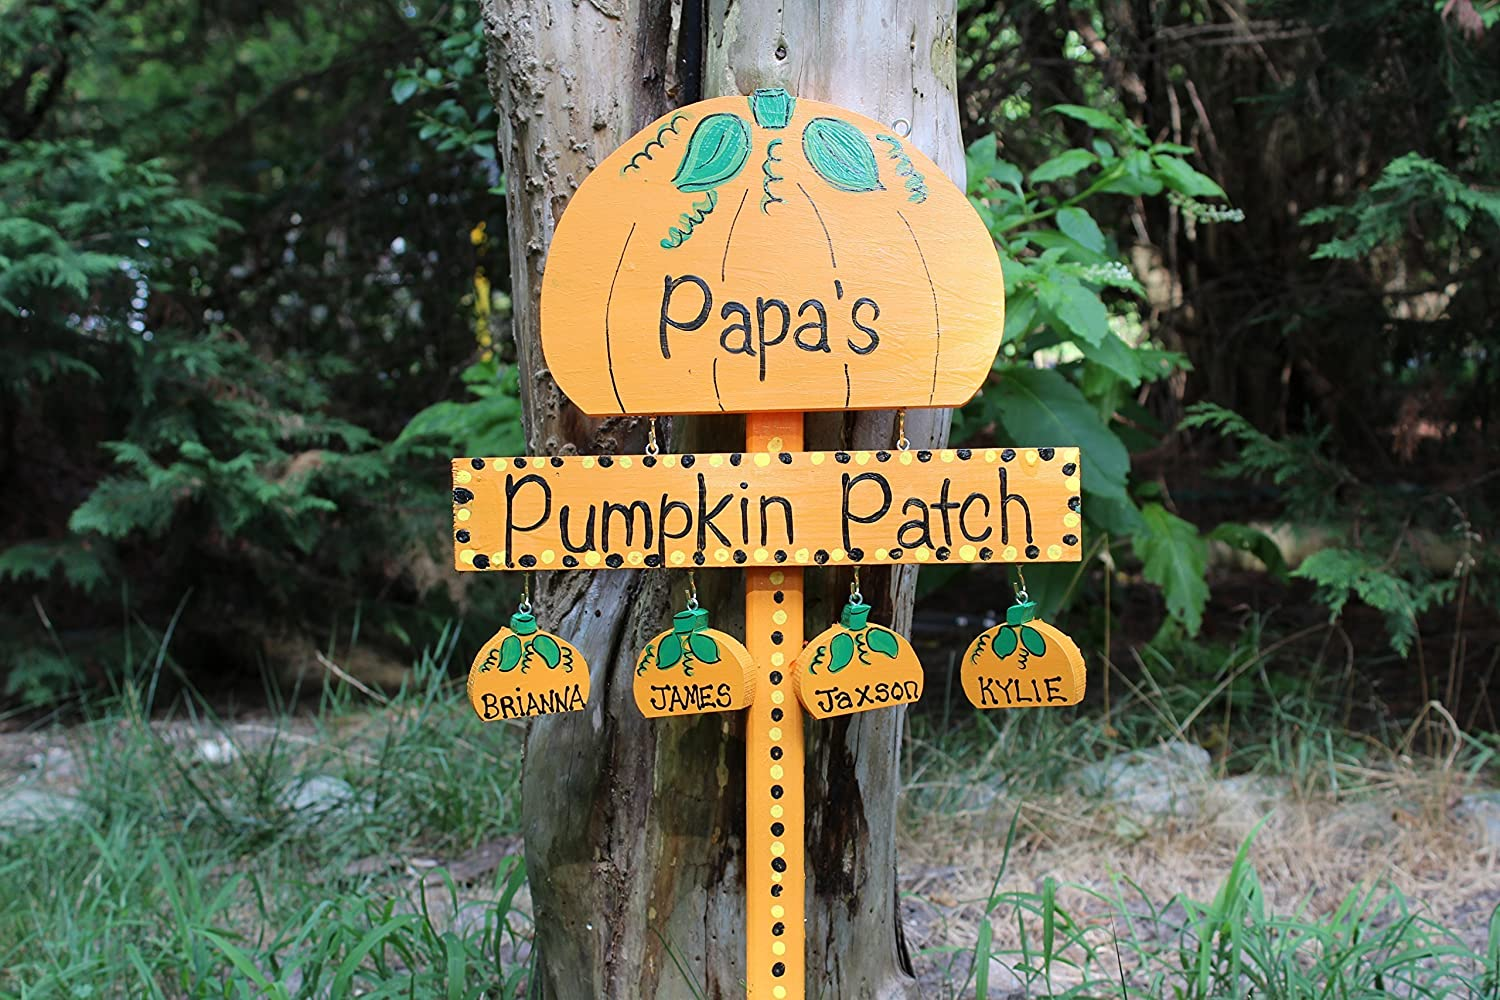 B016FA4310 Pumpkin patch yard stake, pumpkin patch sign, pumpkin yard stake 91A1-Eh-y6L